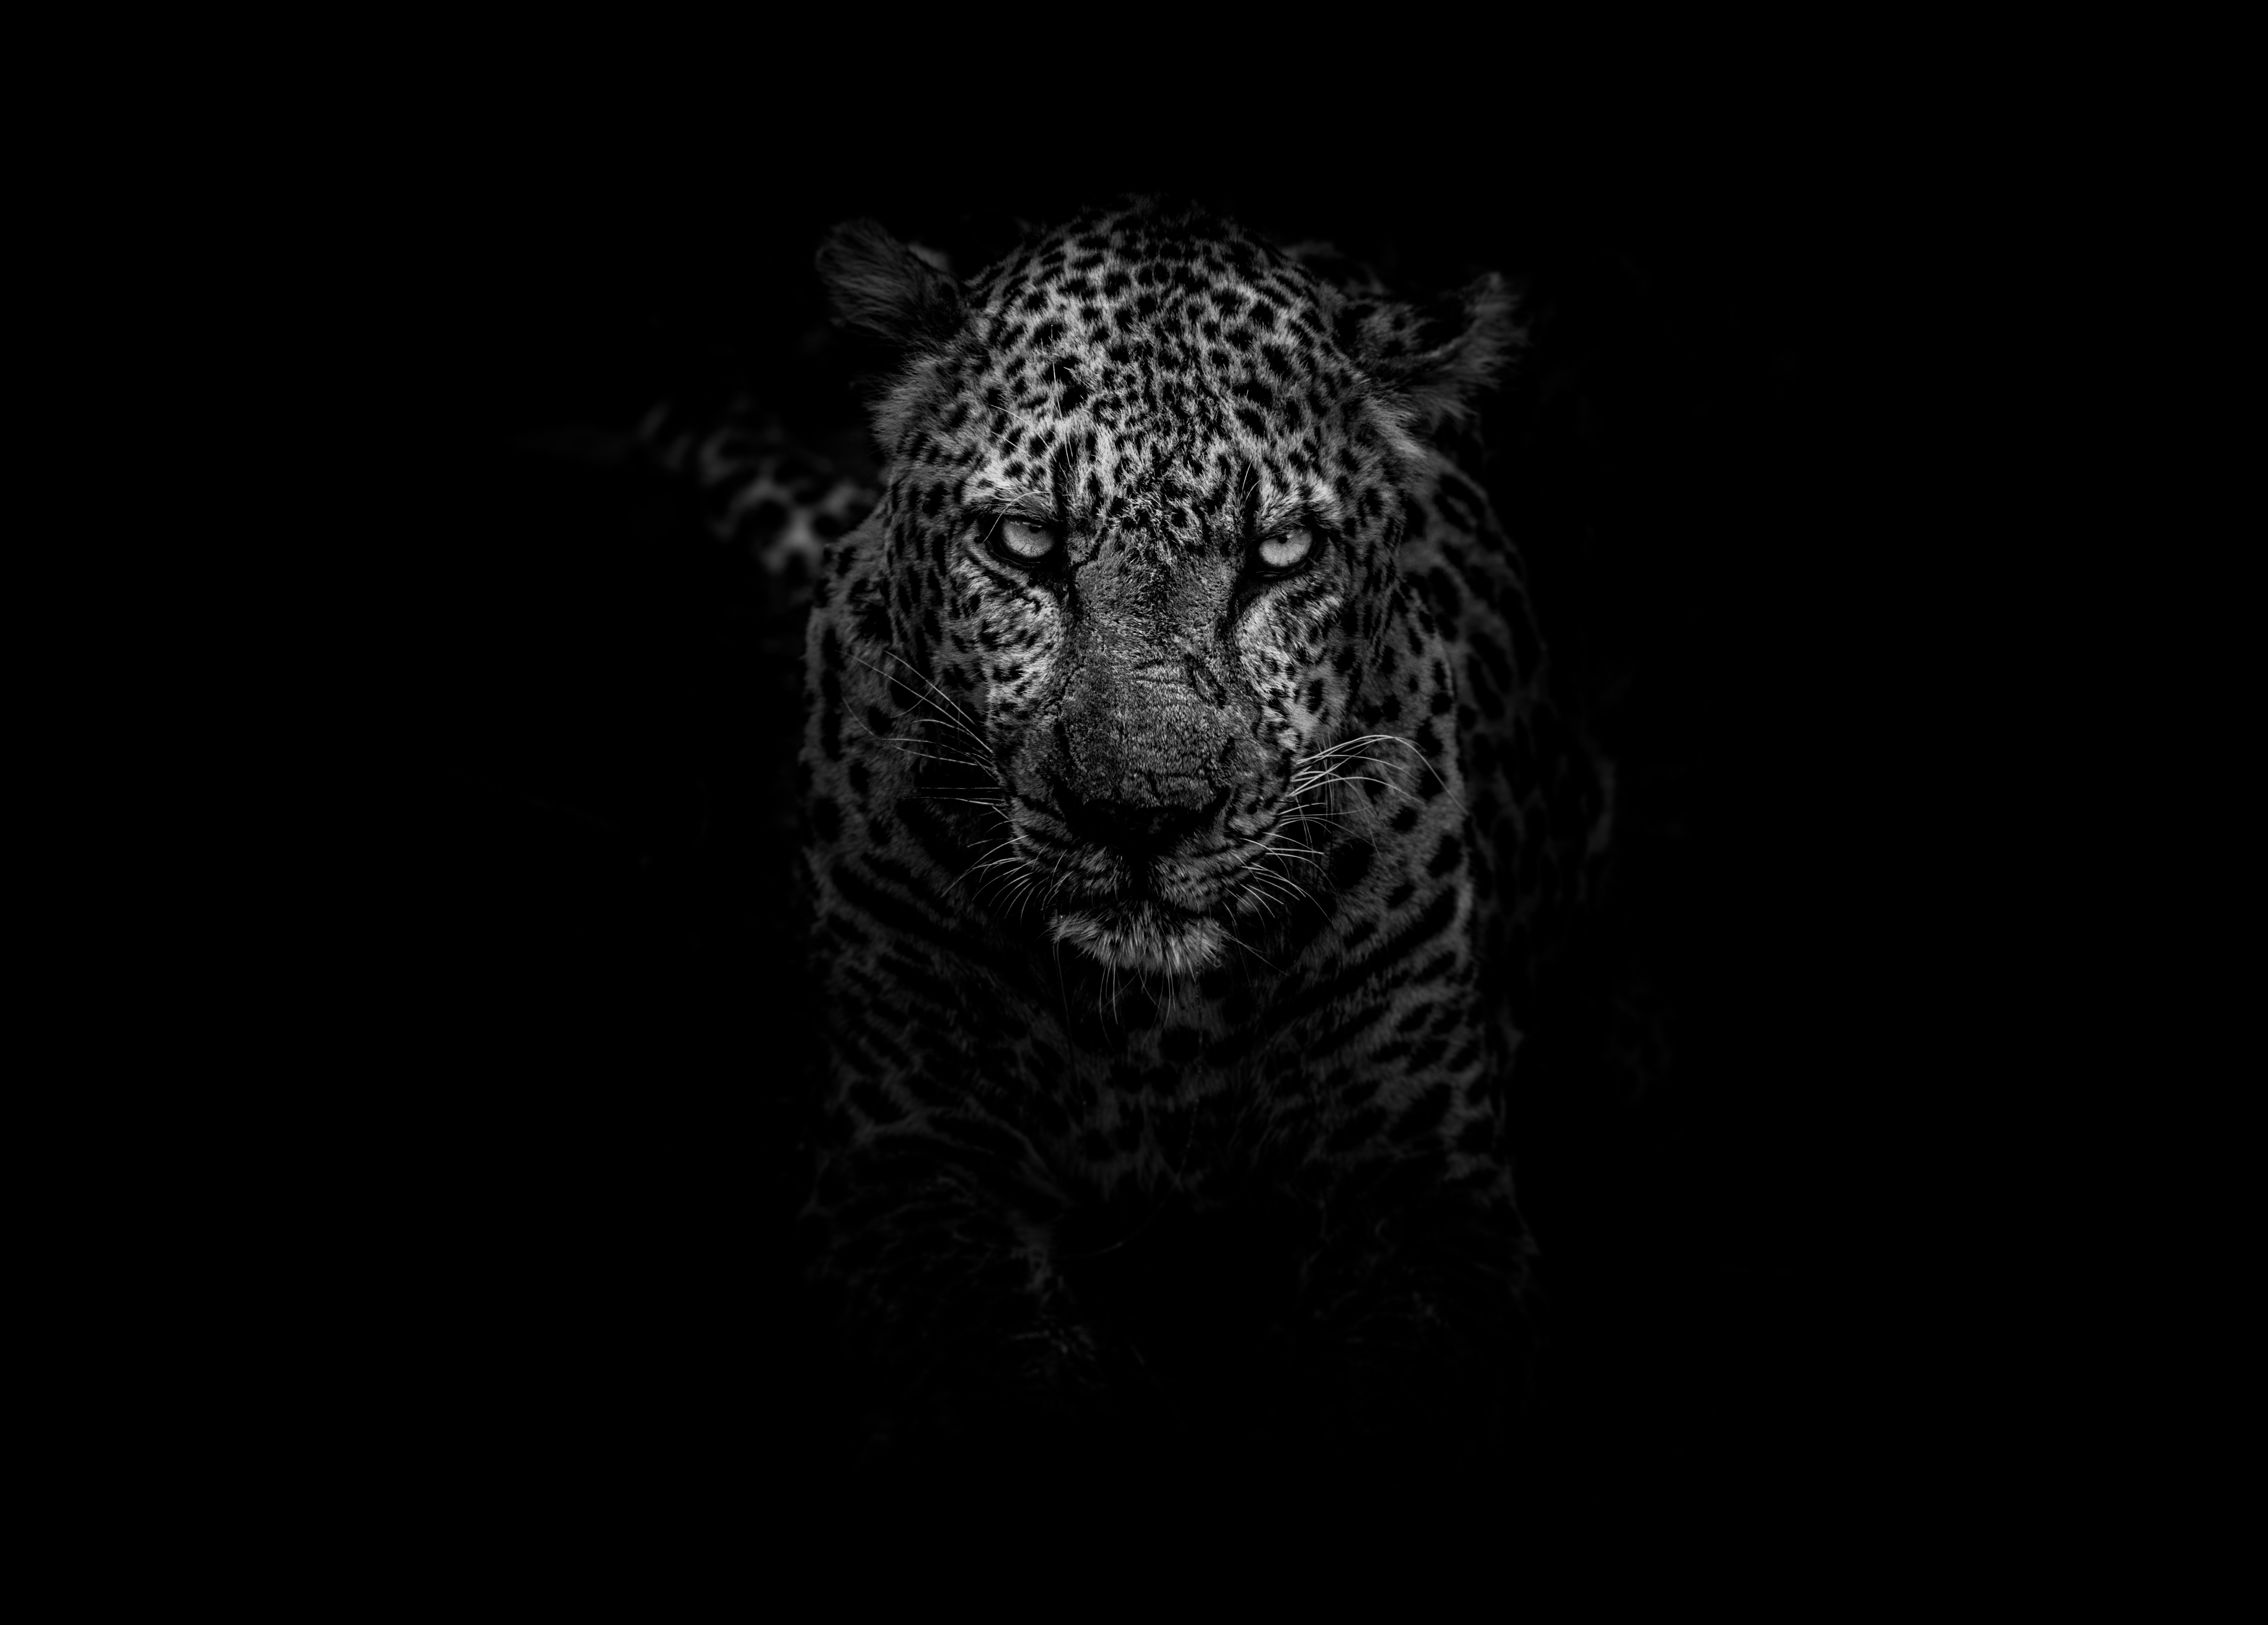 135268 download wallpaper Animals, Leopard, Muzzle, Predator, Bw, Chb screensavers and pictures for free